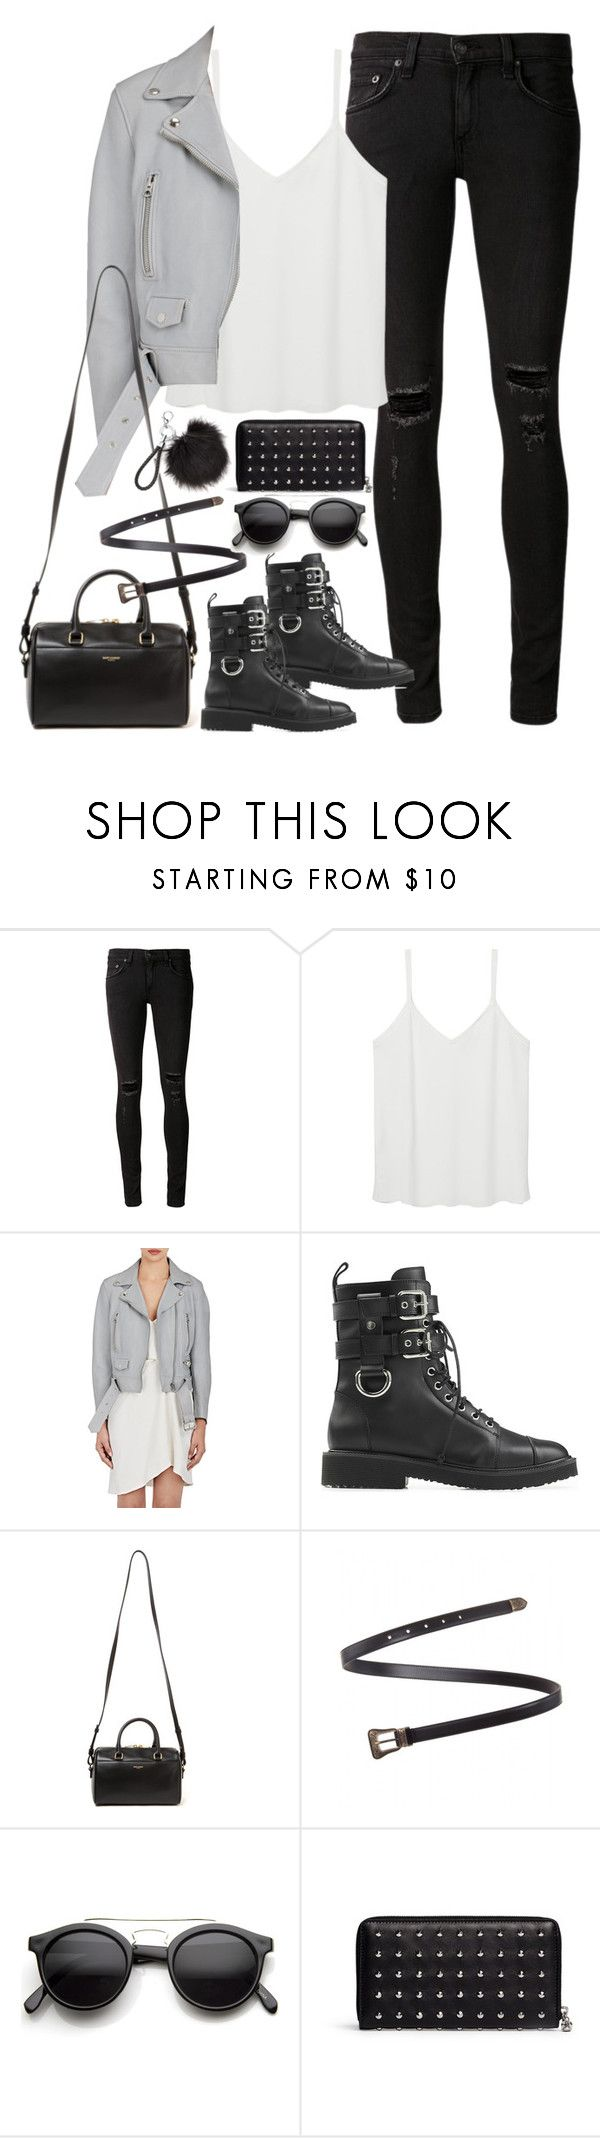 """Untitled#4505"" by fashionnfacts ❤ liked on Polyvore featuring rag & bone/JEAN, MANGO, Acne Studios, Giuseppe Zanotti, Yves Saint Laurent, Retrò and Alexander McQueen"